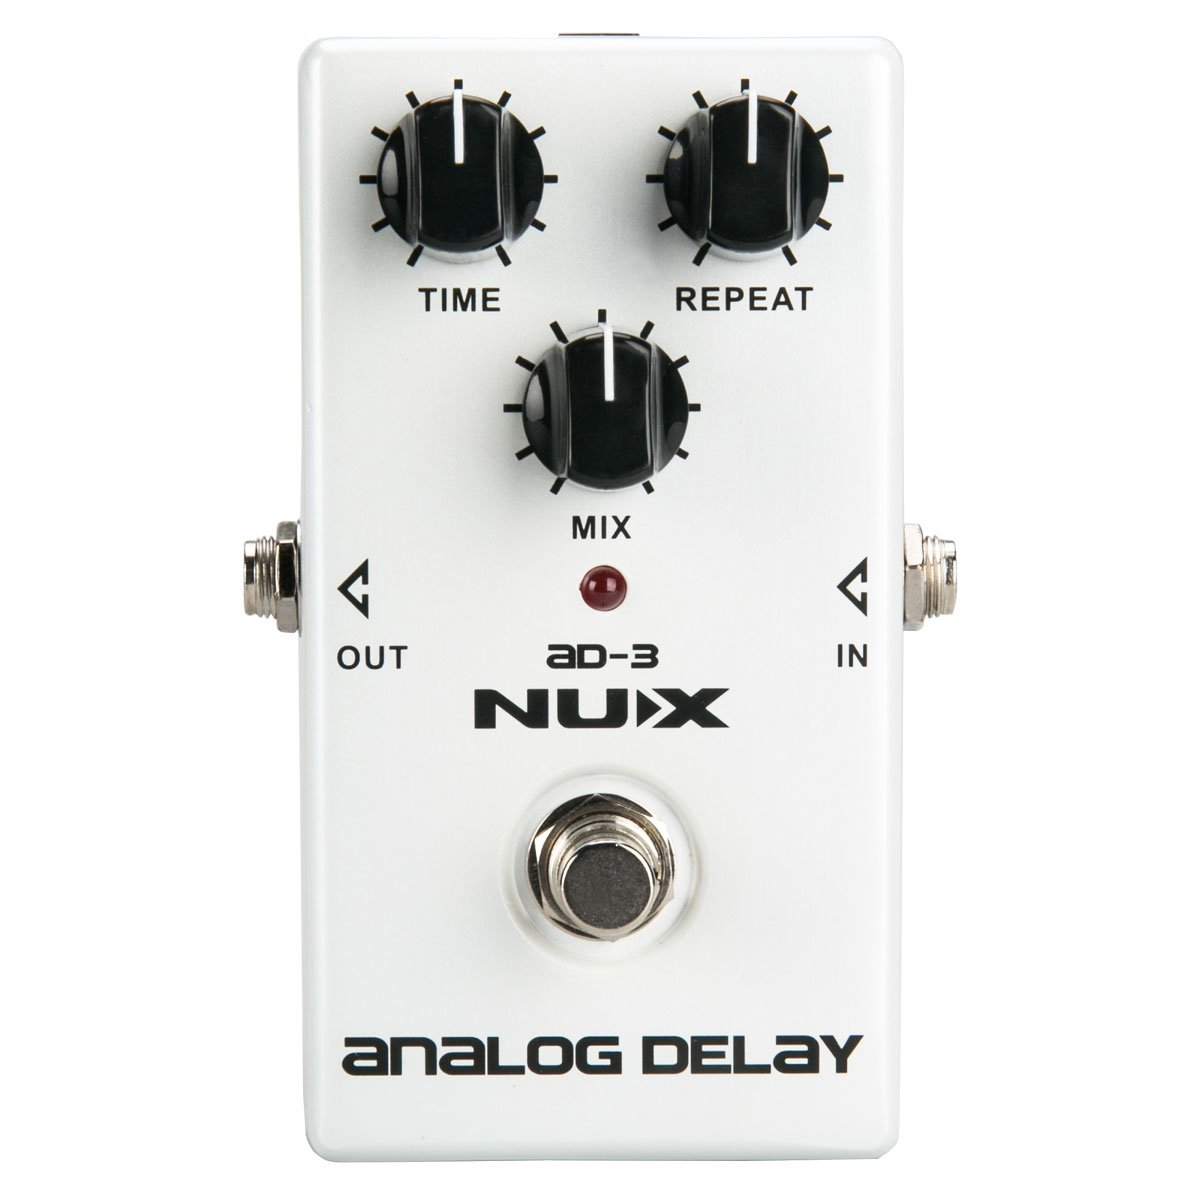 NUX AD-3 Analog Delay Guitar Pedal Low Noise BBD in Delay Circuit Warm Natural Delay Effect